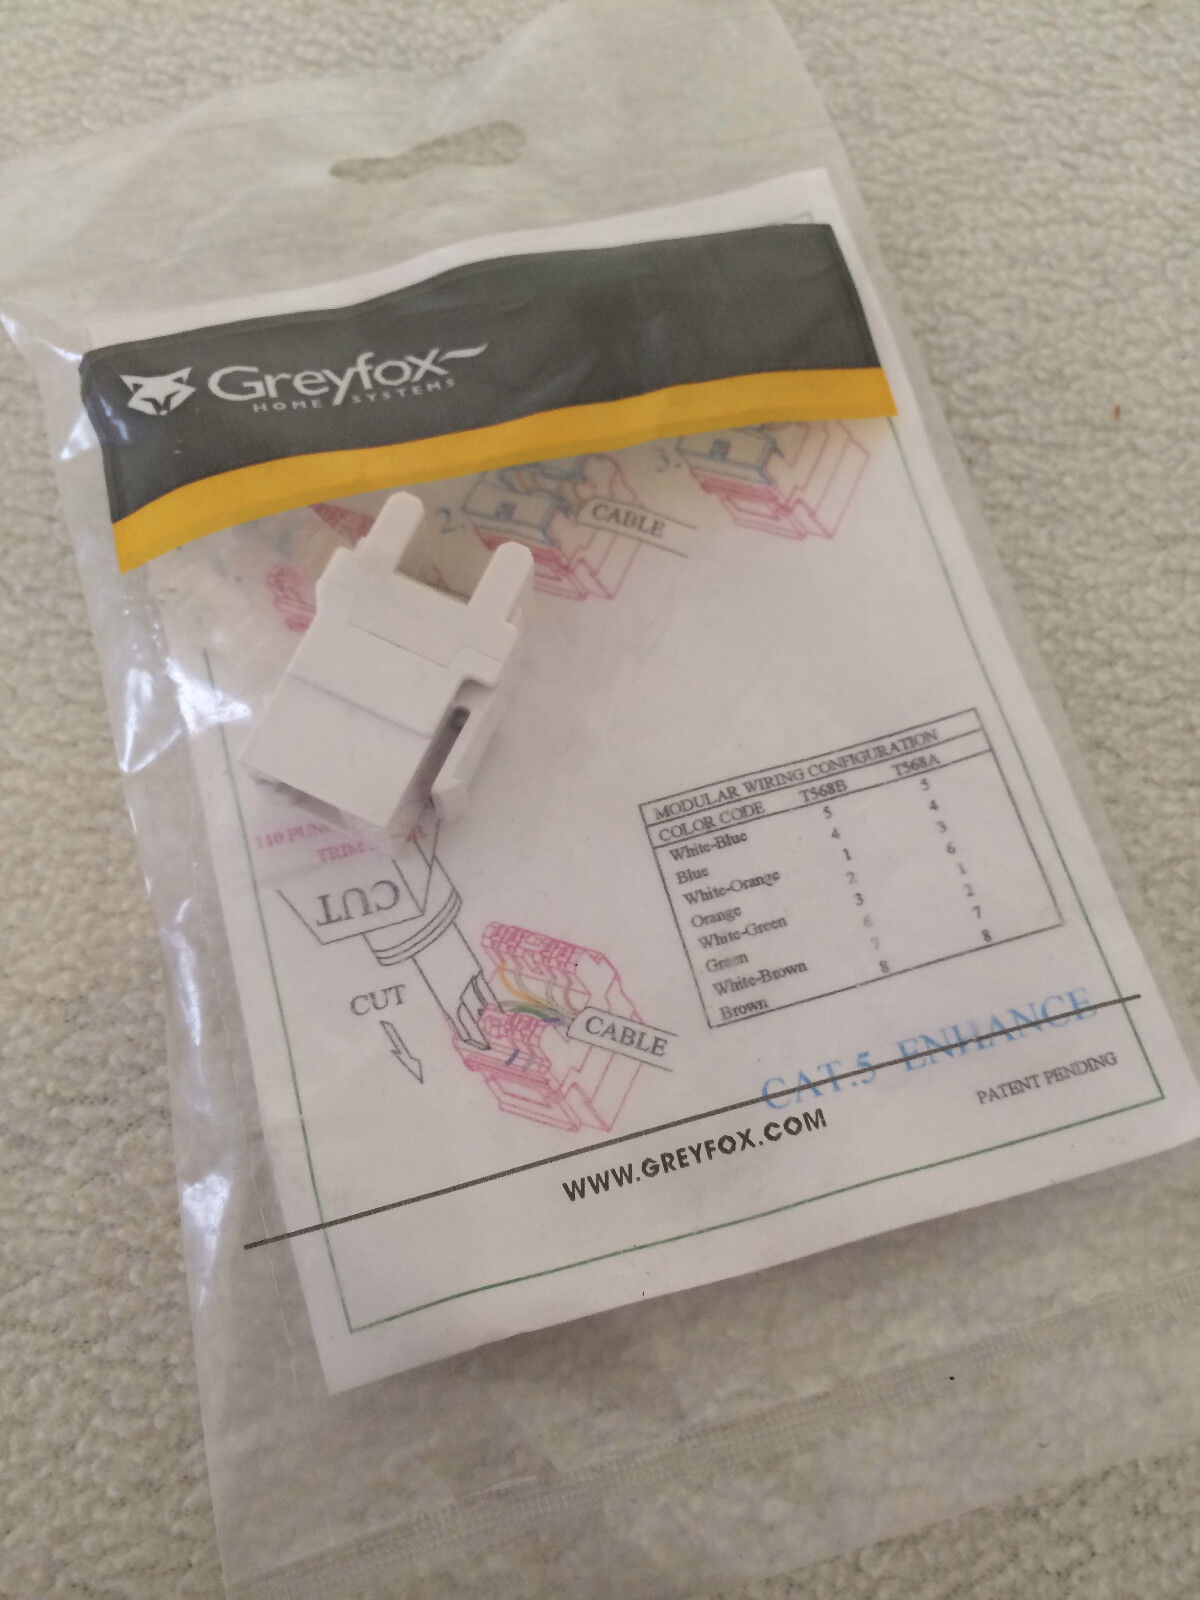 Greyfox F3450 Wh Cat 5e Rj45 Modular Keystone Connector White Cat5e Jack Wiring Picture 1 Of 4